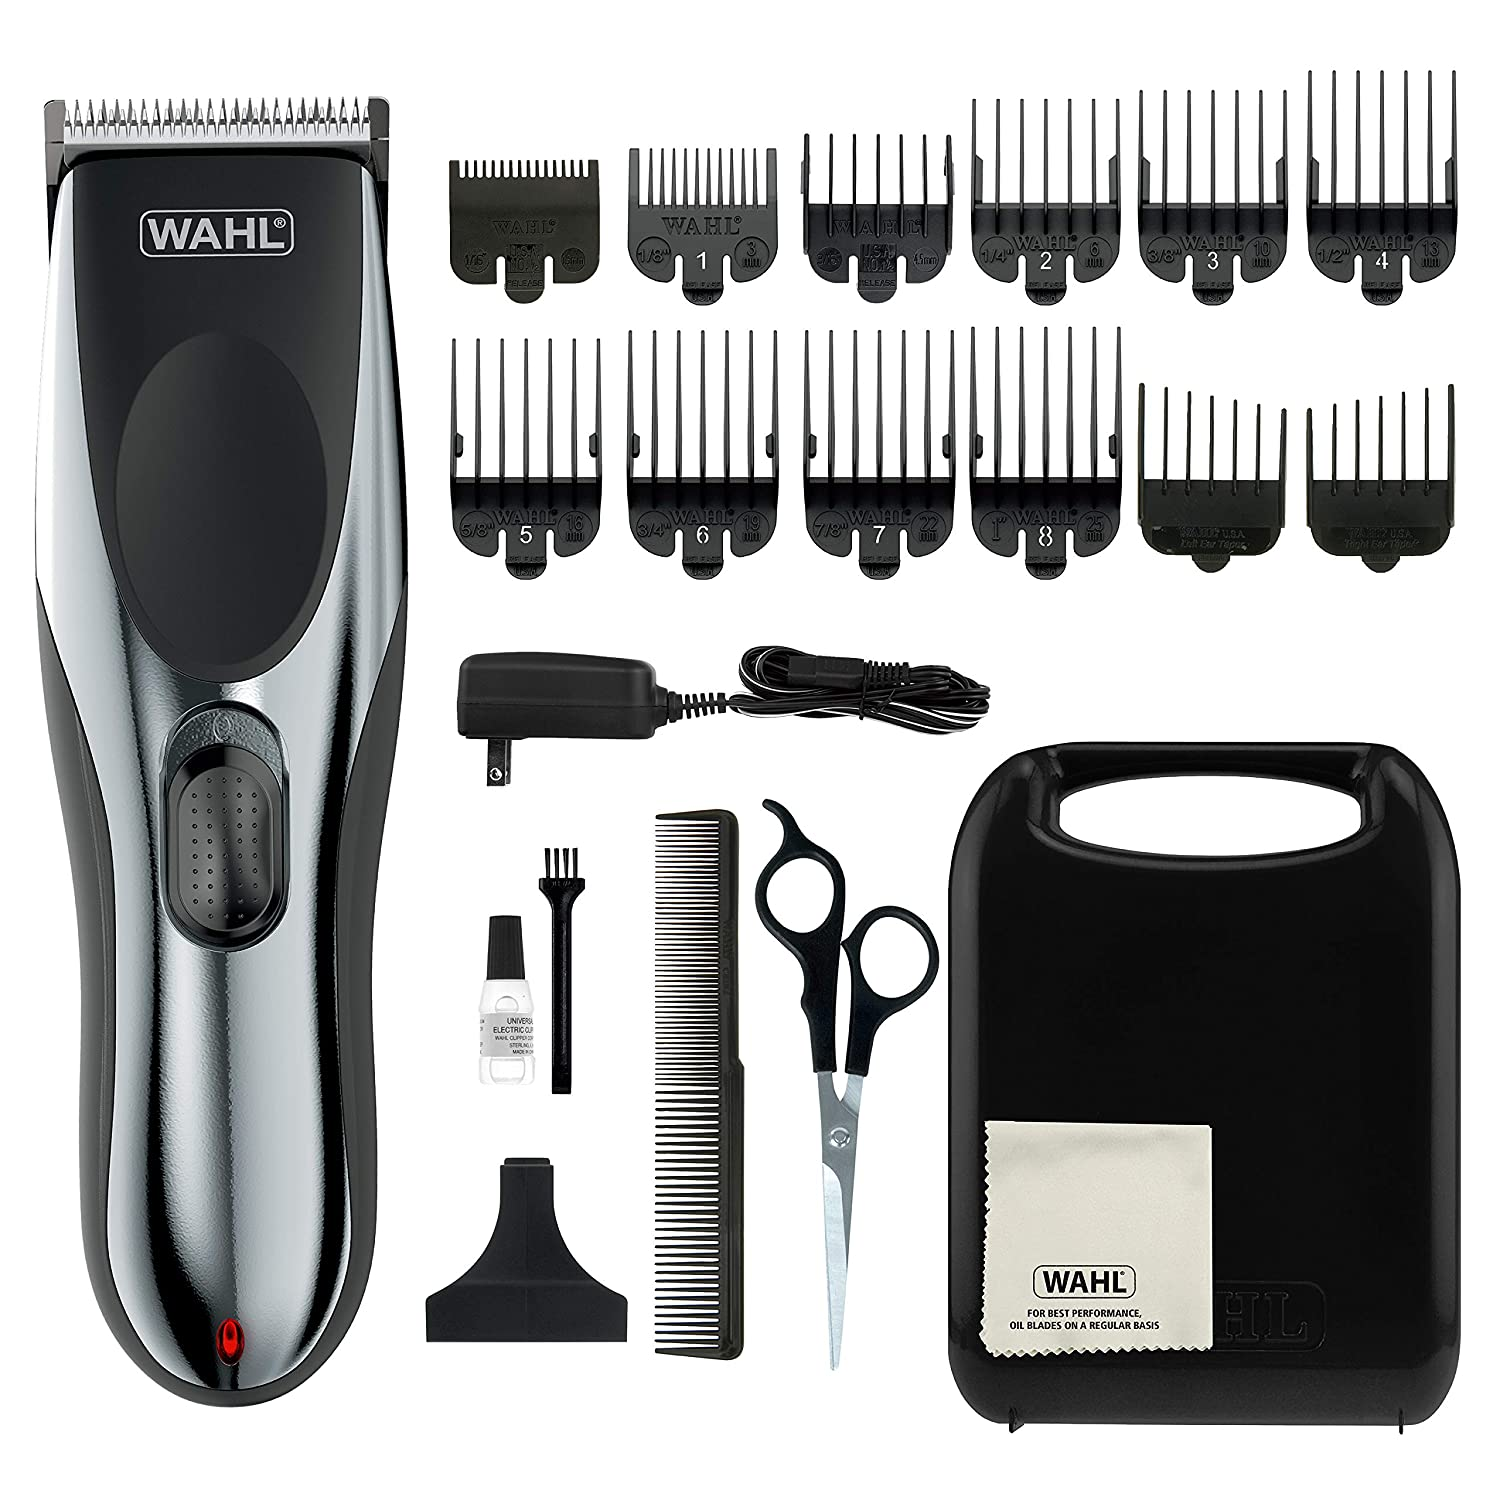 WAHL Model 79434 Cordless Haircutting & Trimming Kit